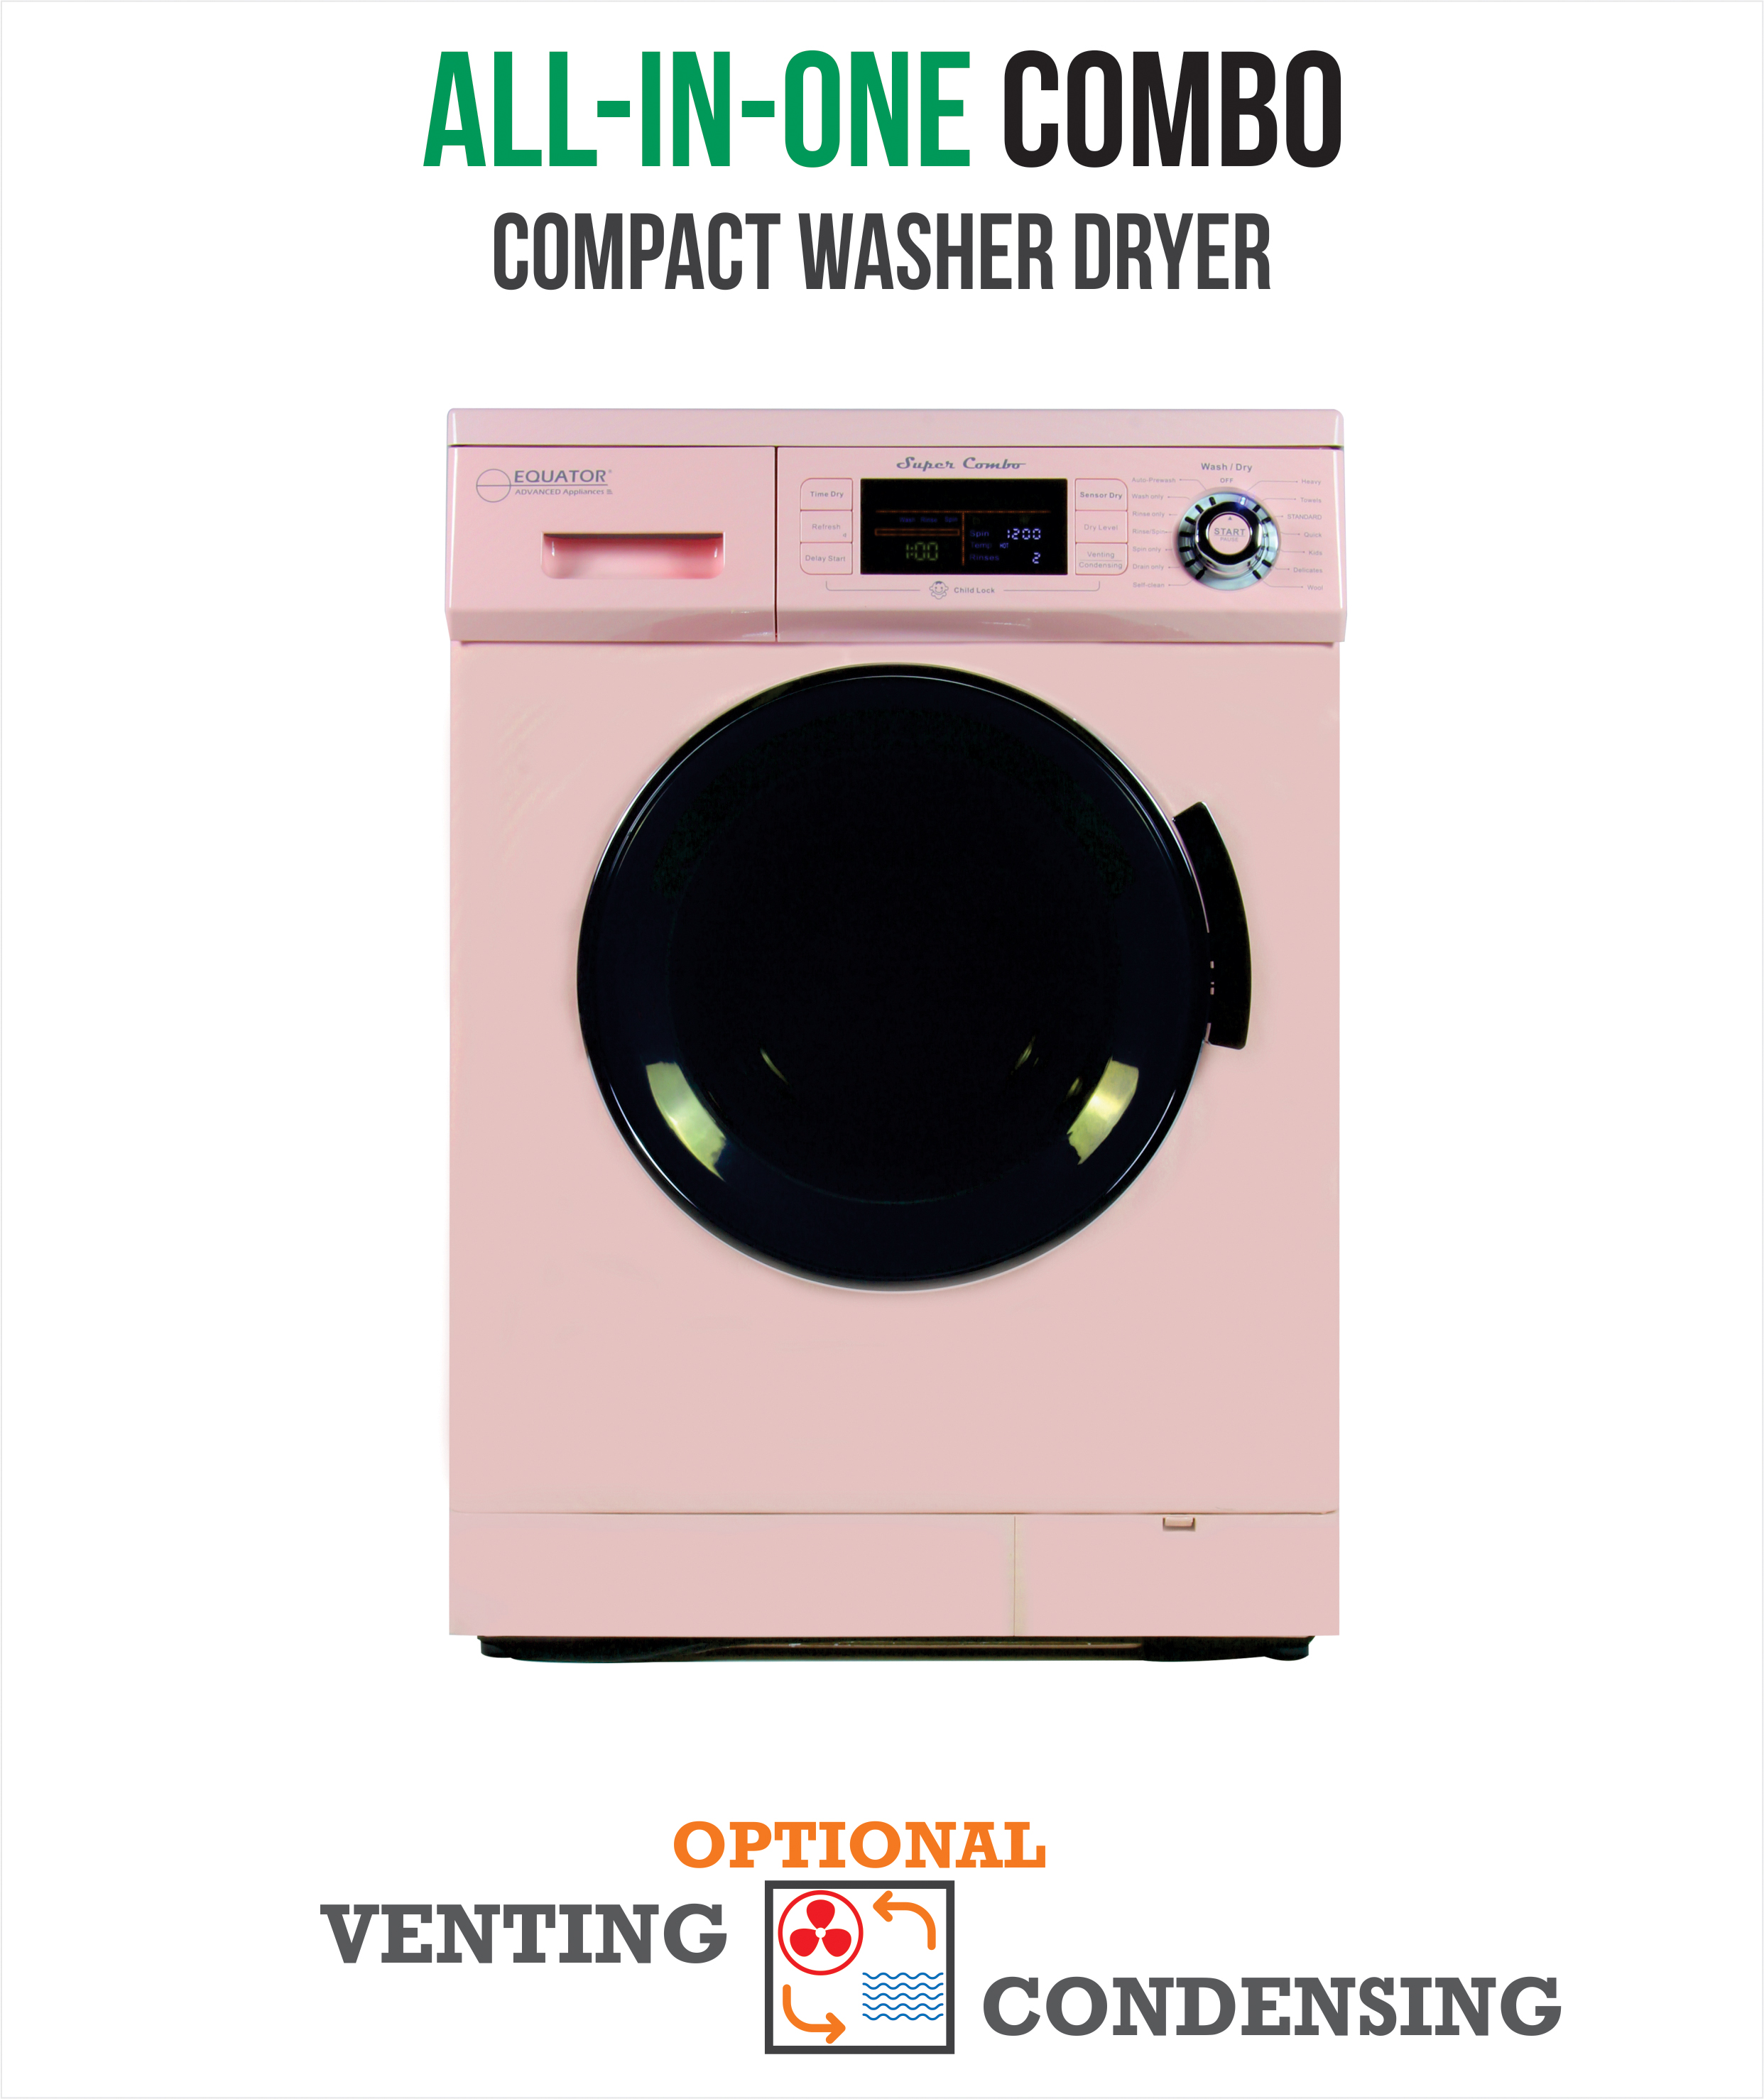 All-in-One 13 lb. 1200 RPM Compact Combo Washer Dryer with Optional Condensing/ Venting, Sensor Dry, Auto Water Level, Pink